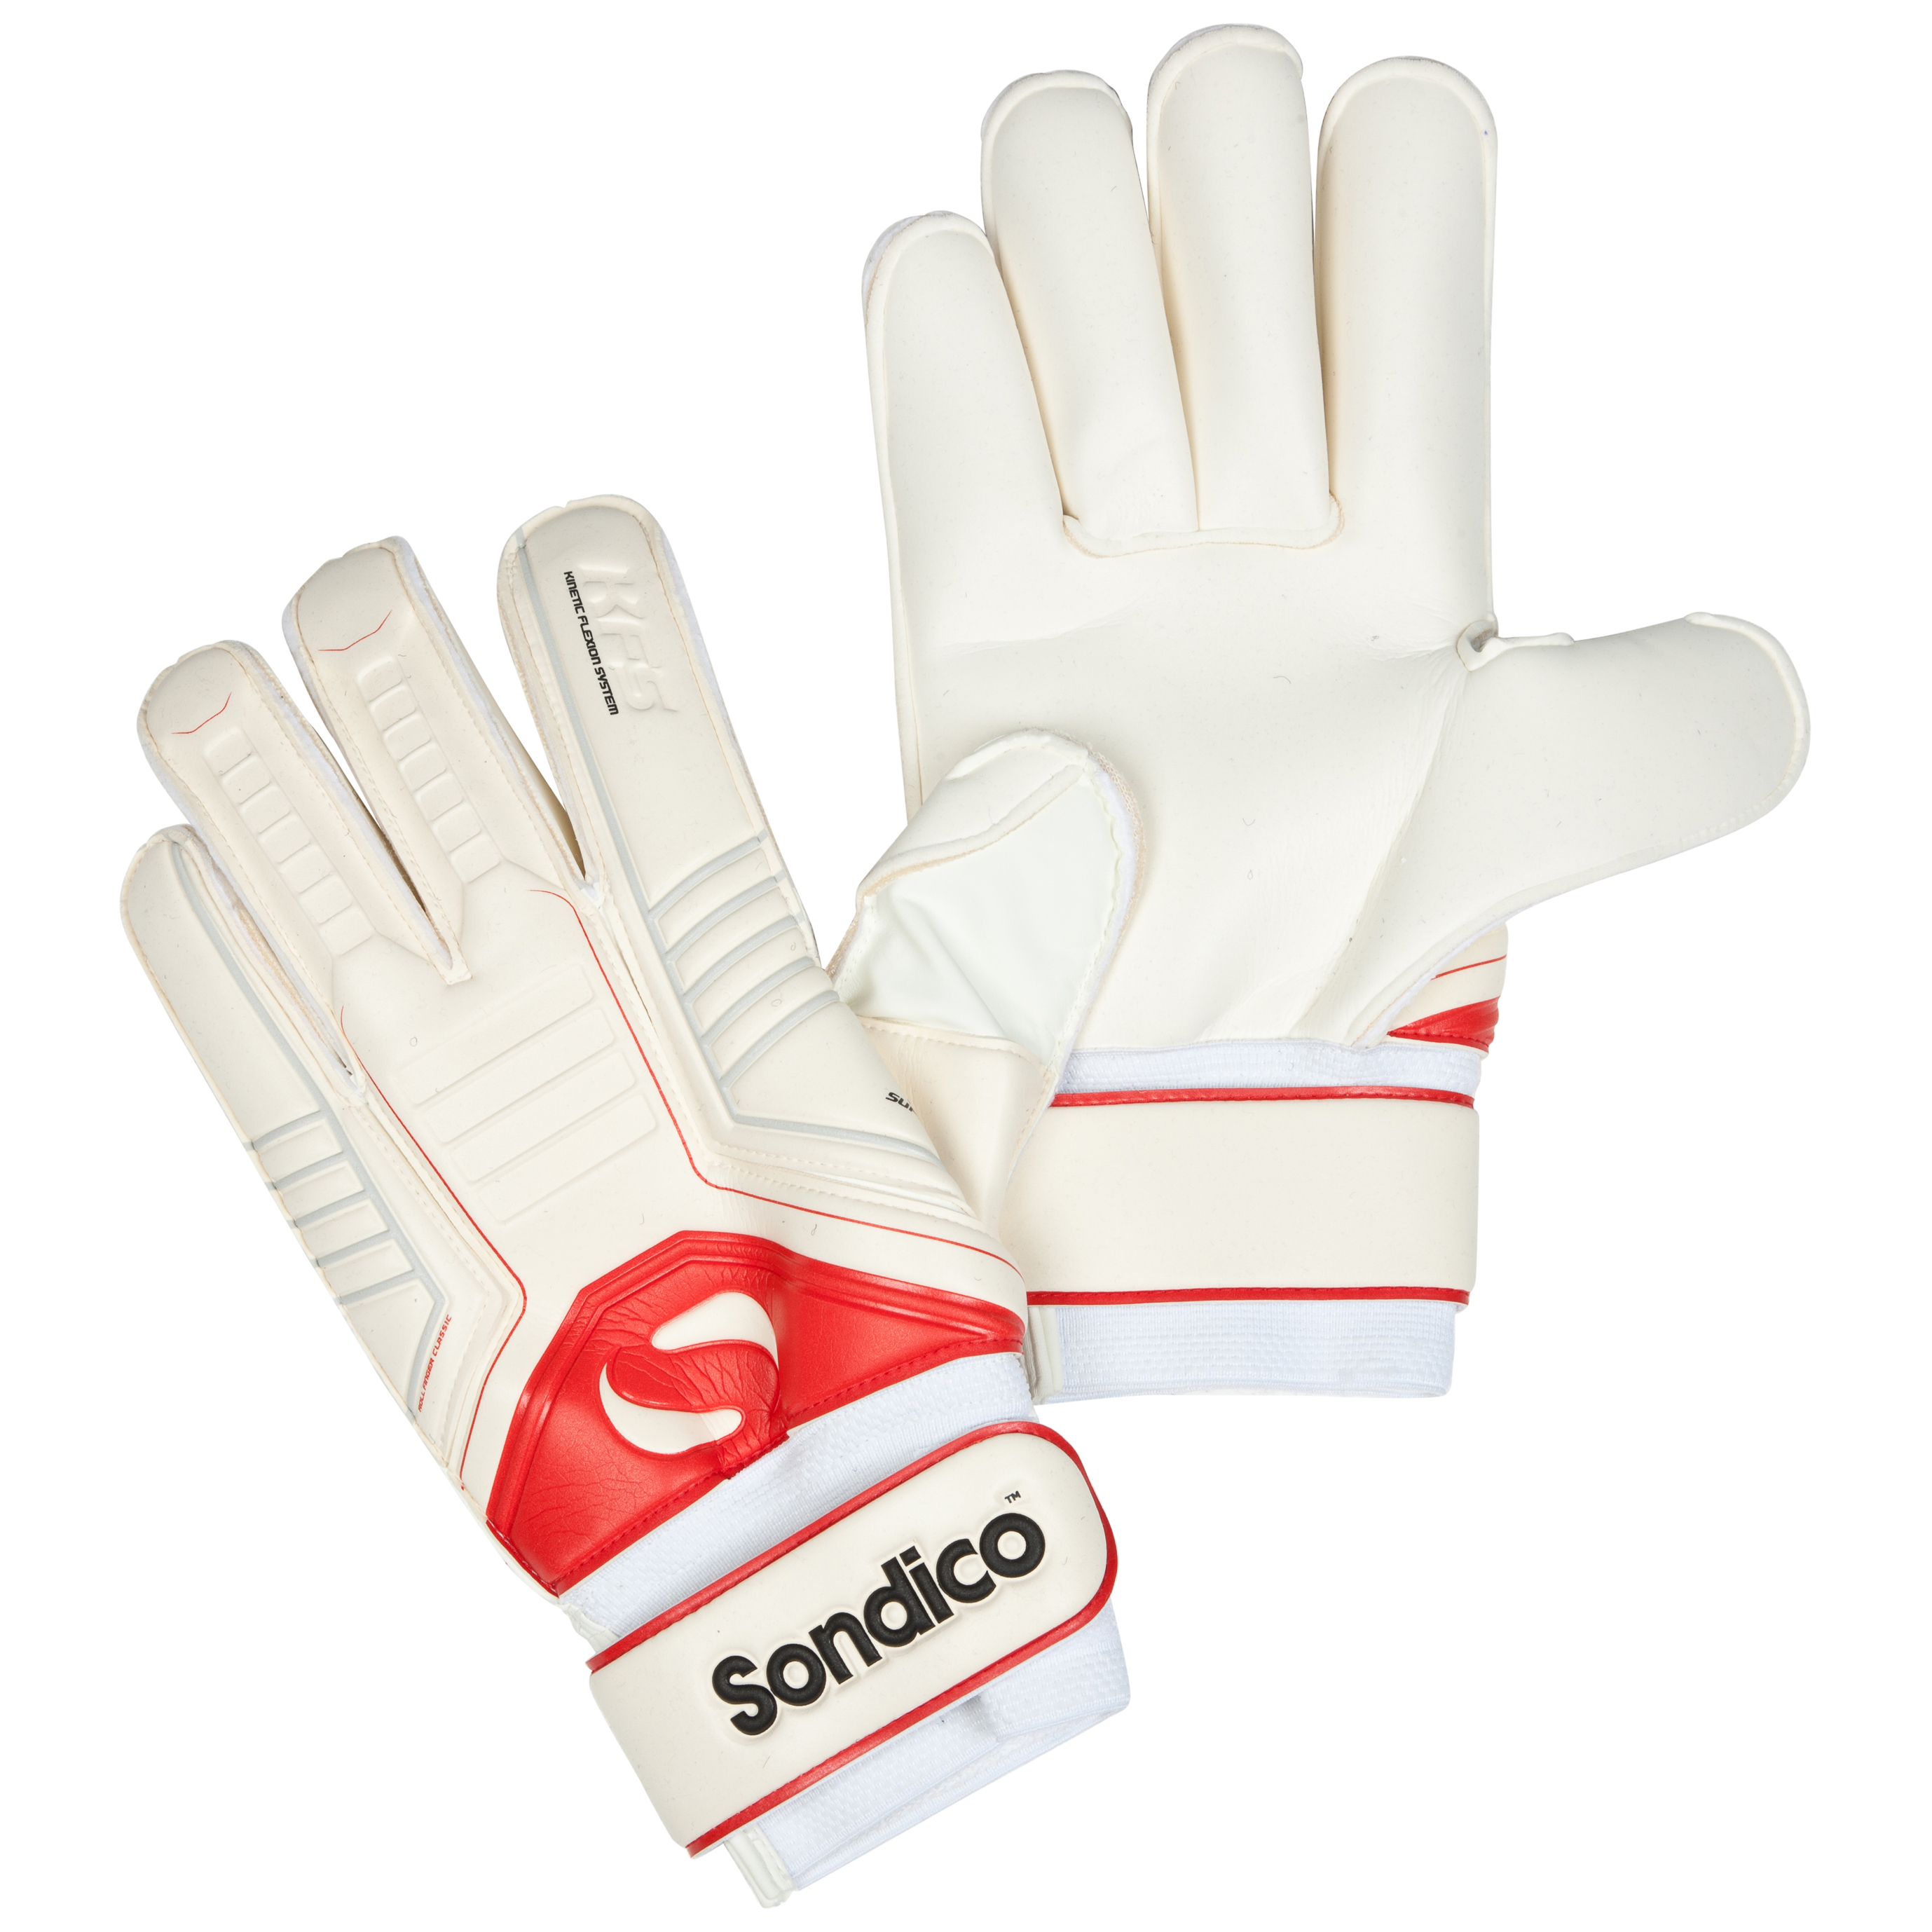 Sondico Sentinel Academy KFS Finger Protection Roll Finger Goalkeeper Gloves - White/Black/Cool Grey/Red